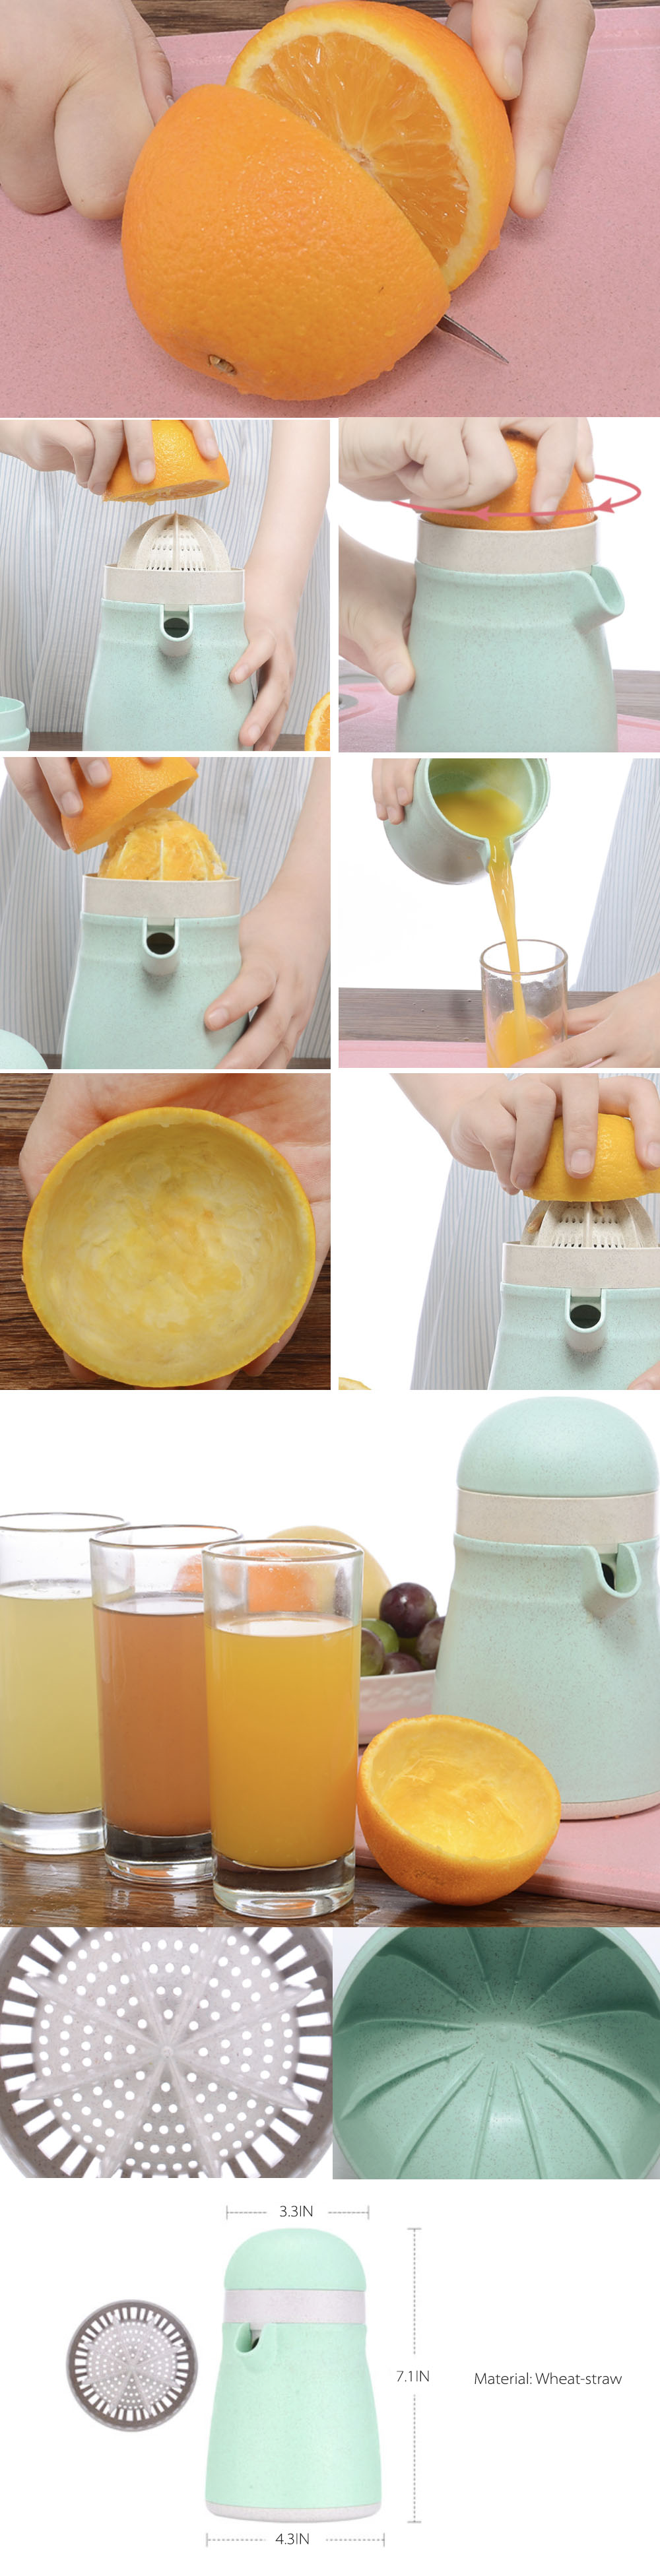 Orange Juice Manual Squeezer Citrus Juicer